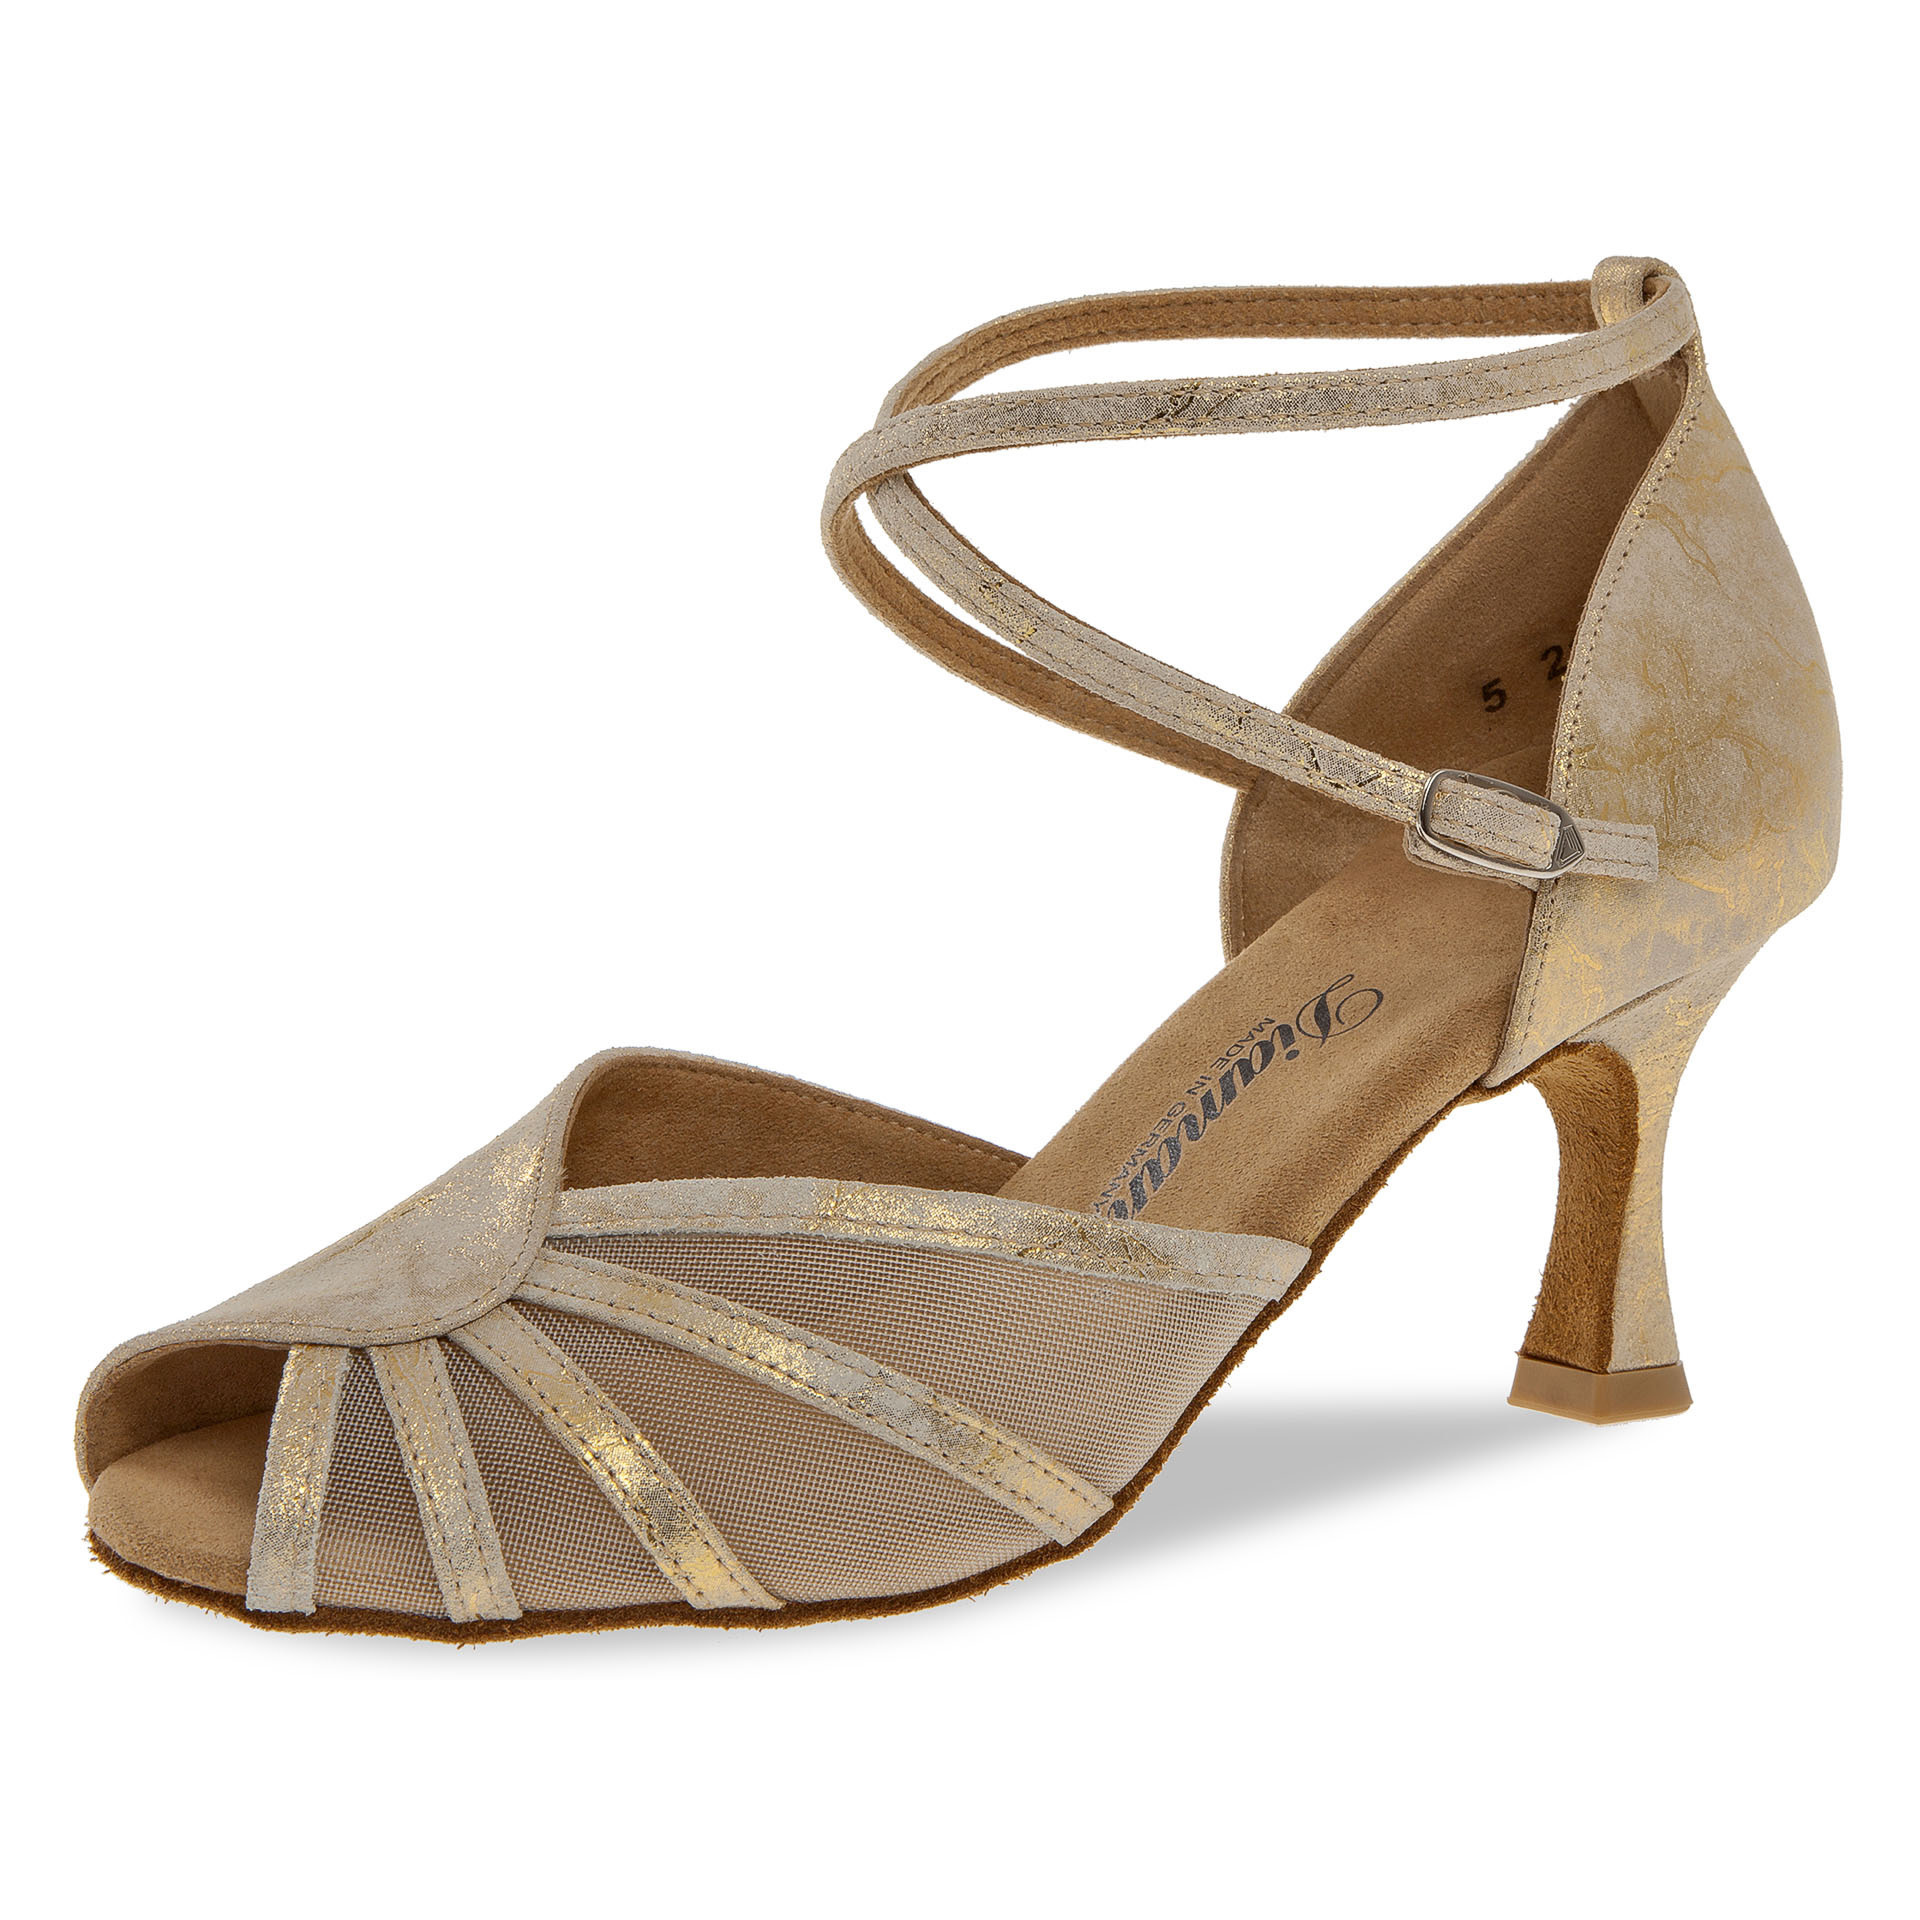 Diamant 020-087-017-Ballroom Shoes 2.5'' Suede Sole-GOLD SUEDE